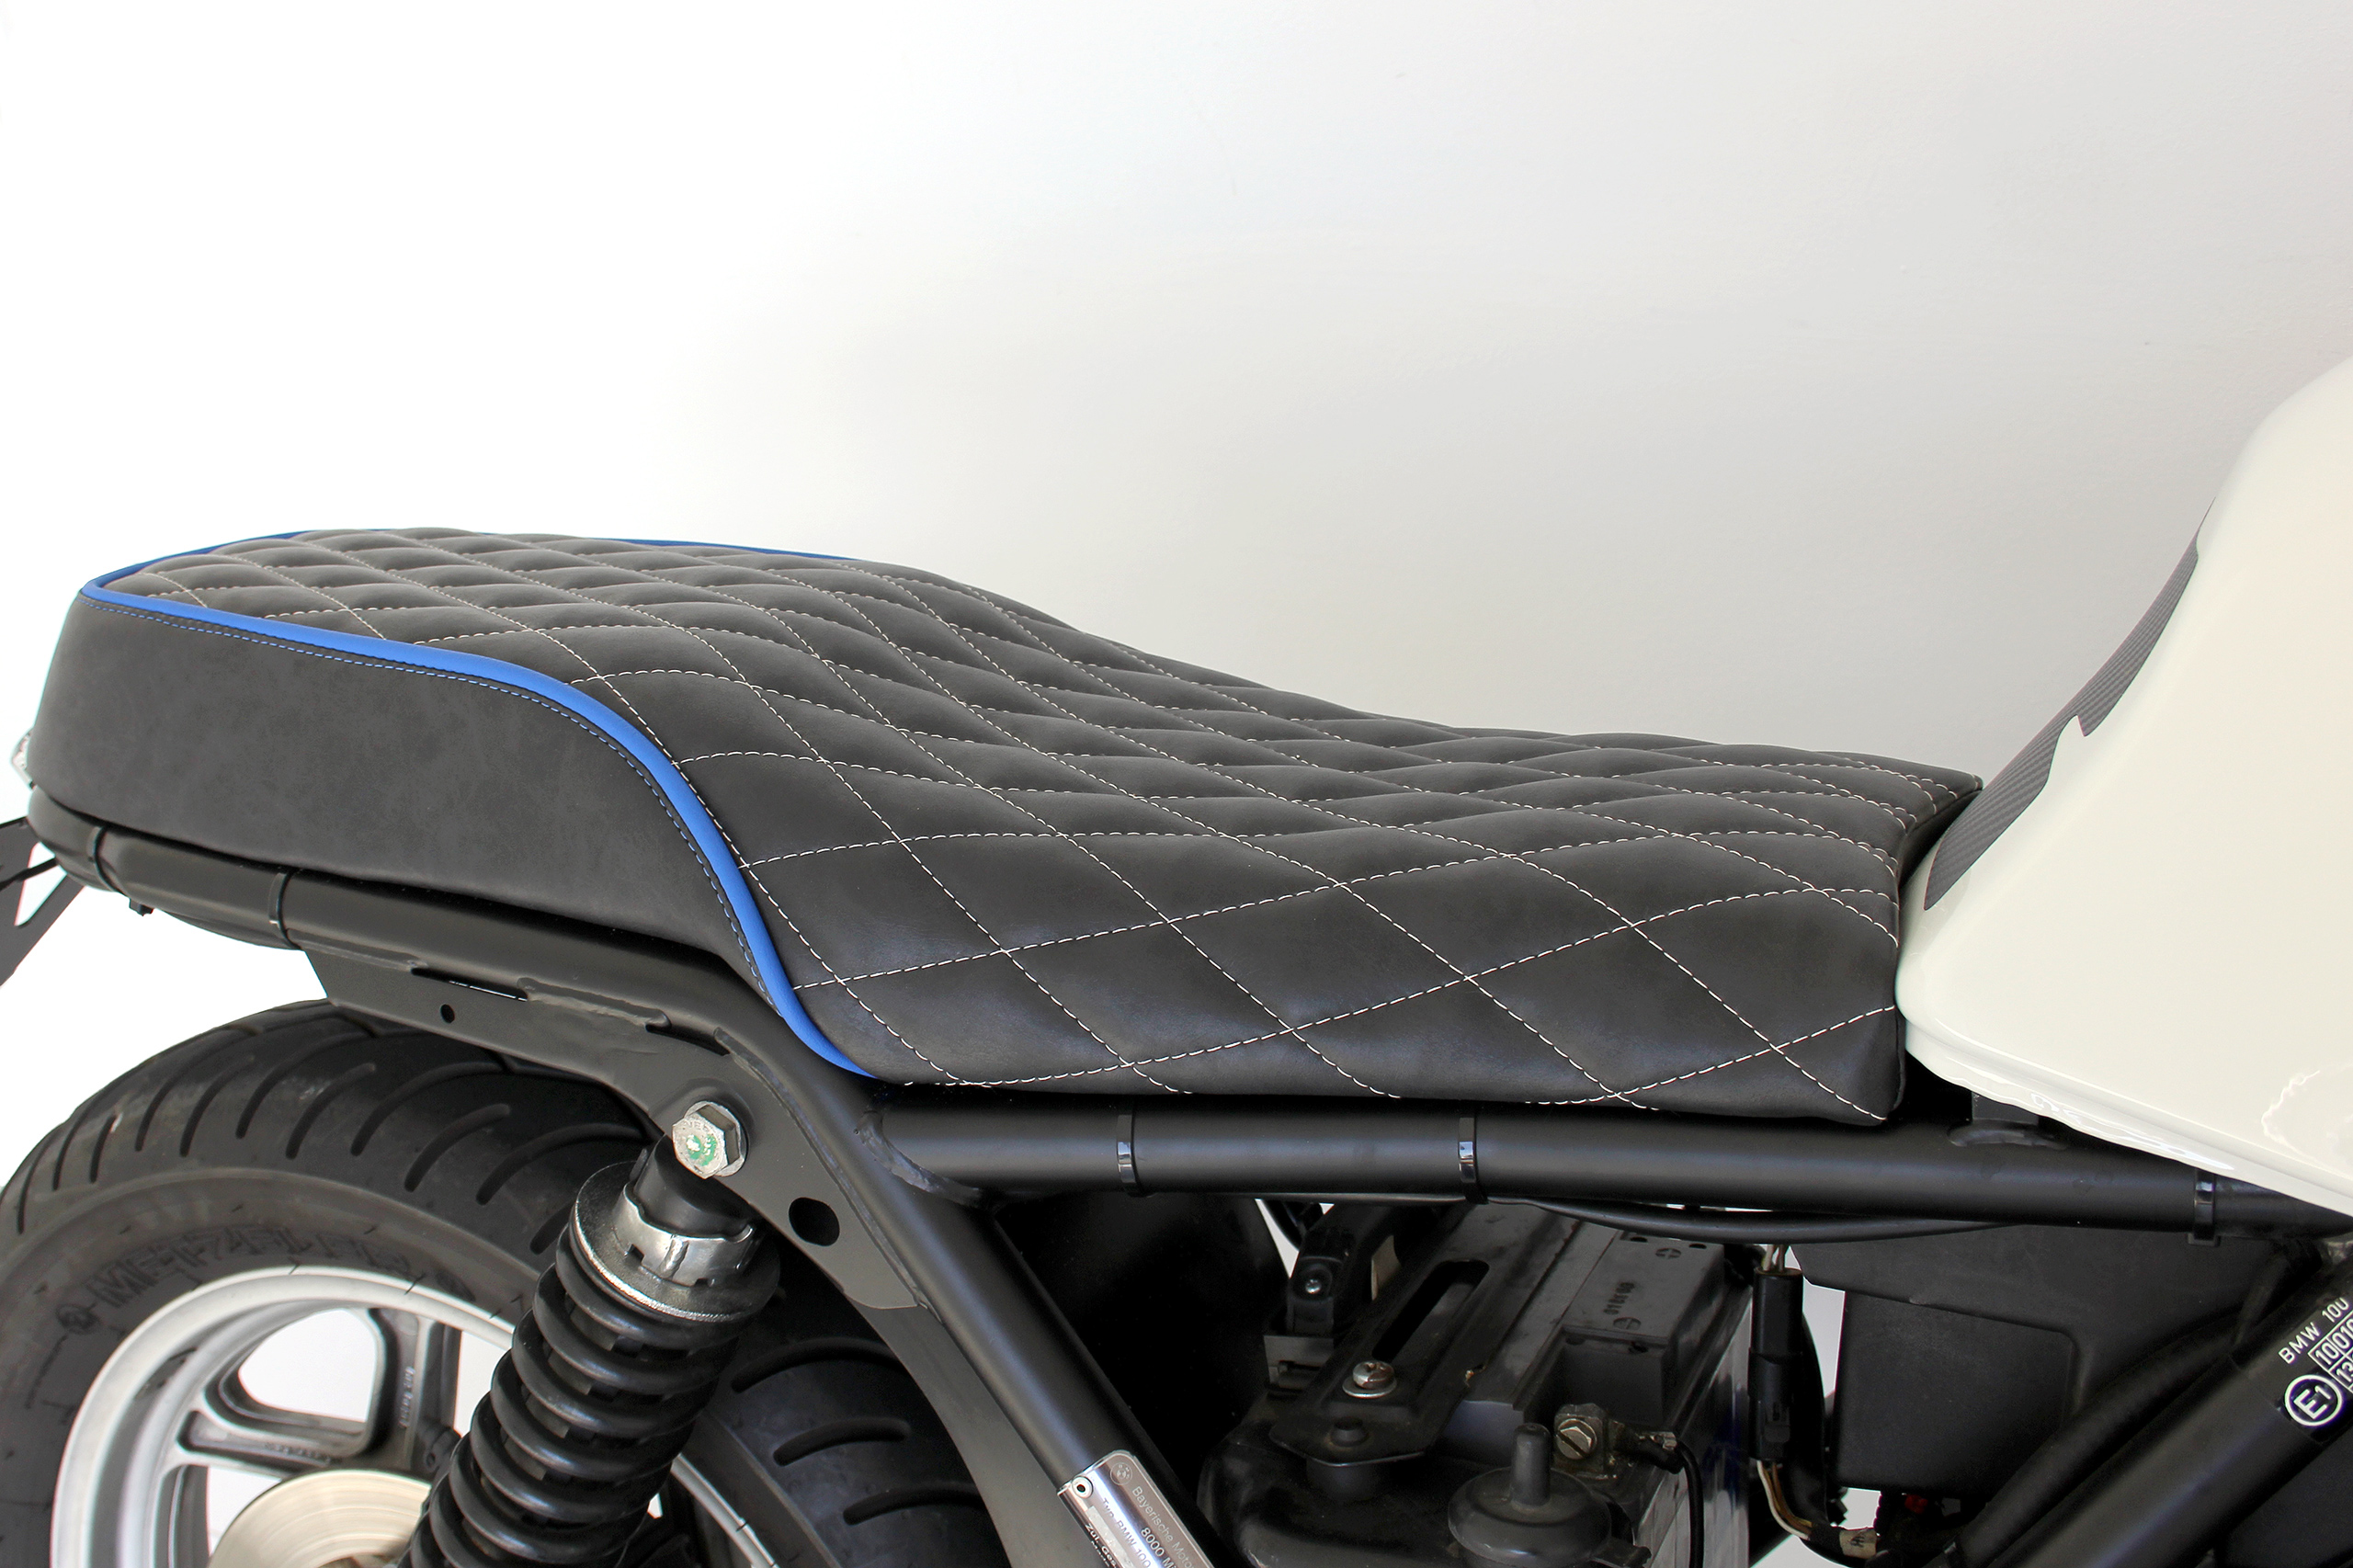 Bmw K100rs Caf Racer By Hornig Trendy Retro Look With Tv Approval Battery Wiring Harness K100lt Printable Picture